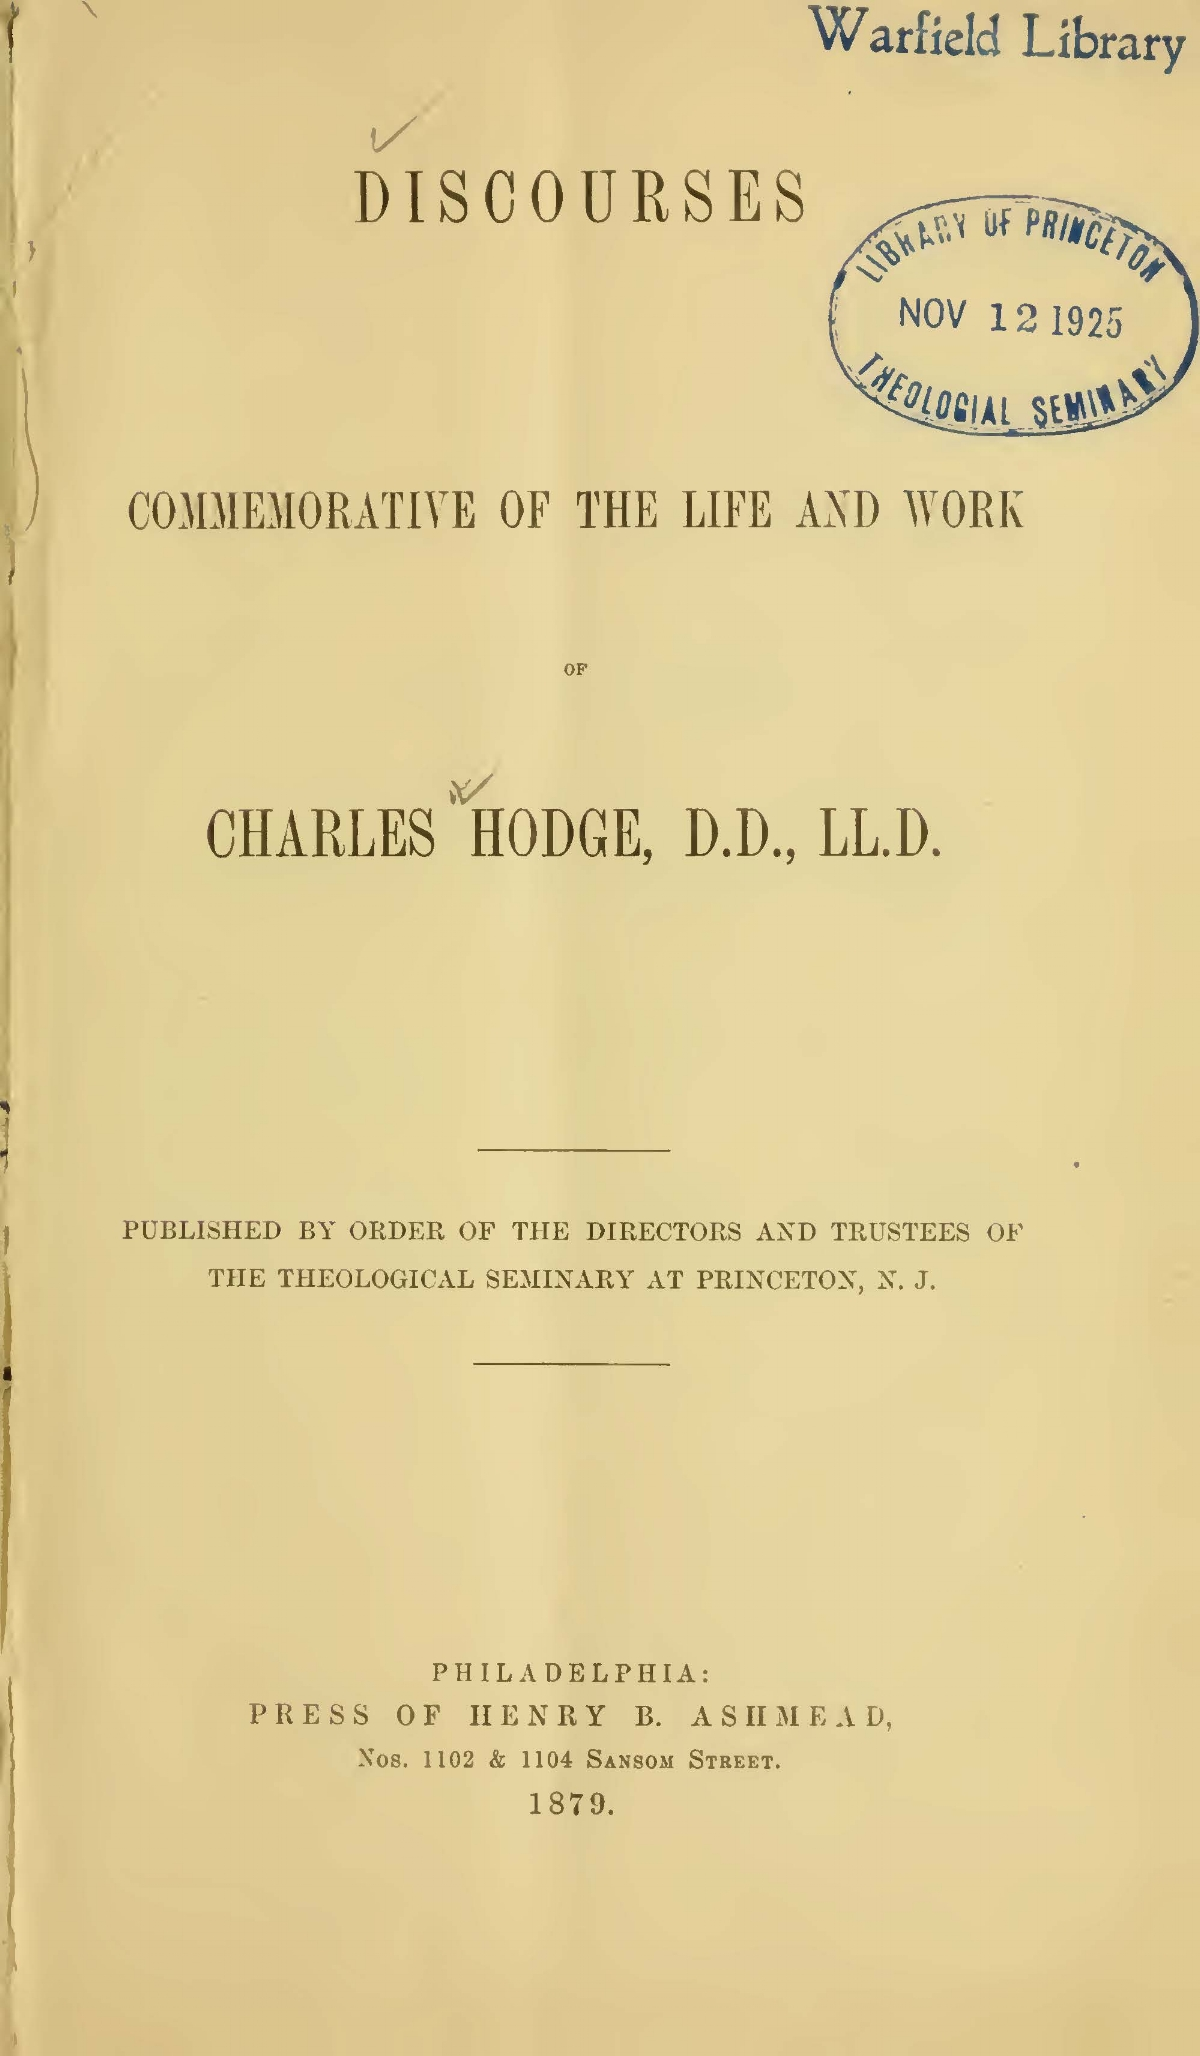 Boardman, Henry Augustus, Discourses Commemorative of the Life and Work of Charles Hodge Title Page.jpg